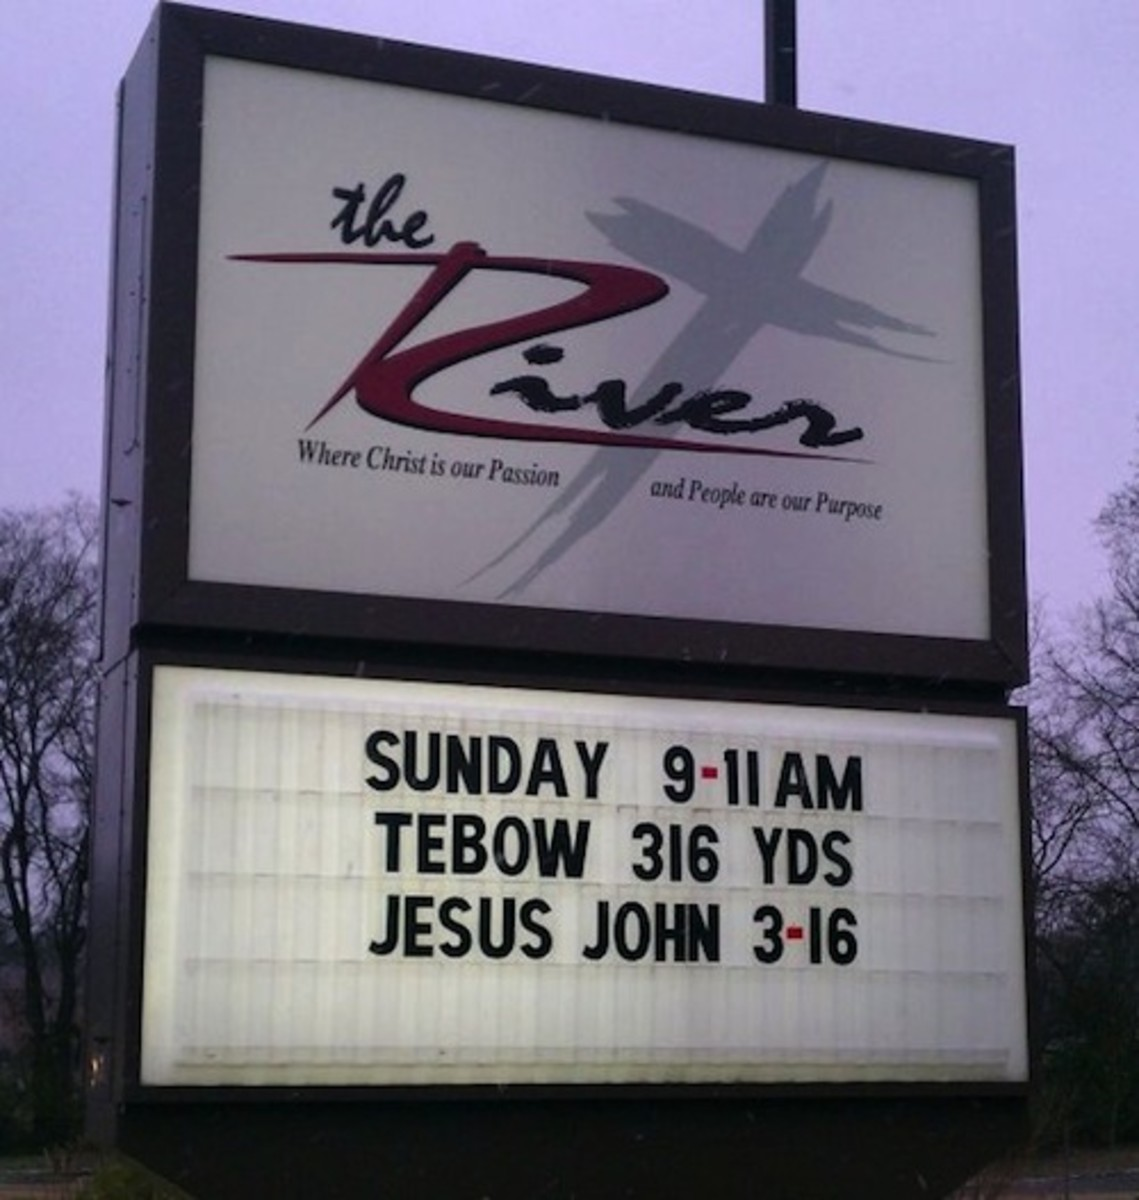 Great church sign: Sunday 9:11 am Tebow 318 yds Jesus John 3:18